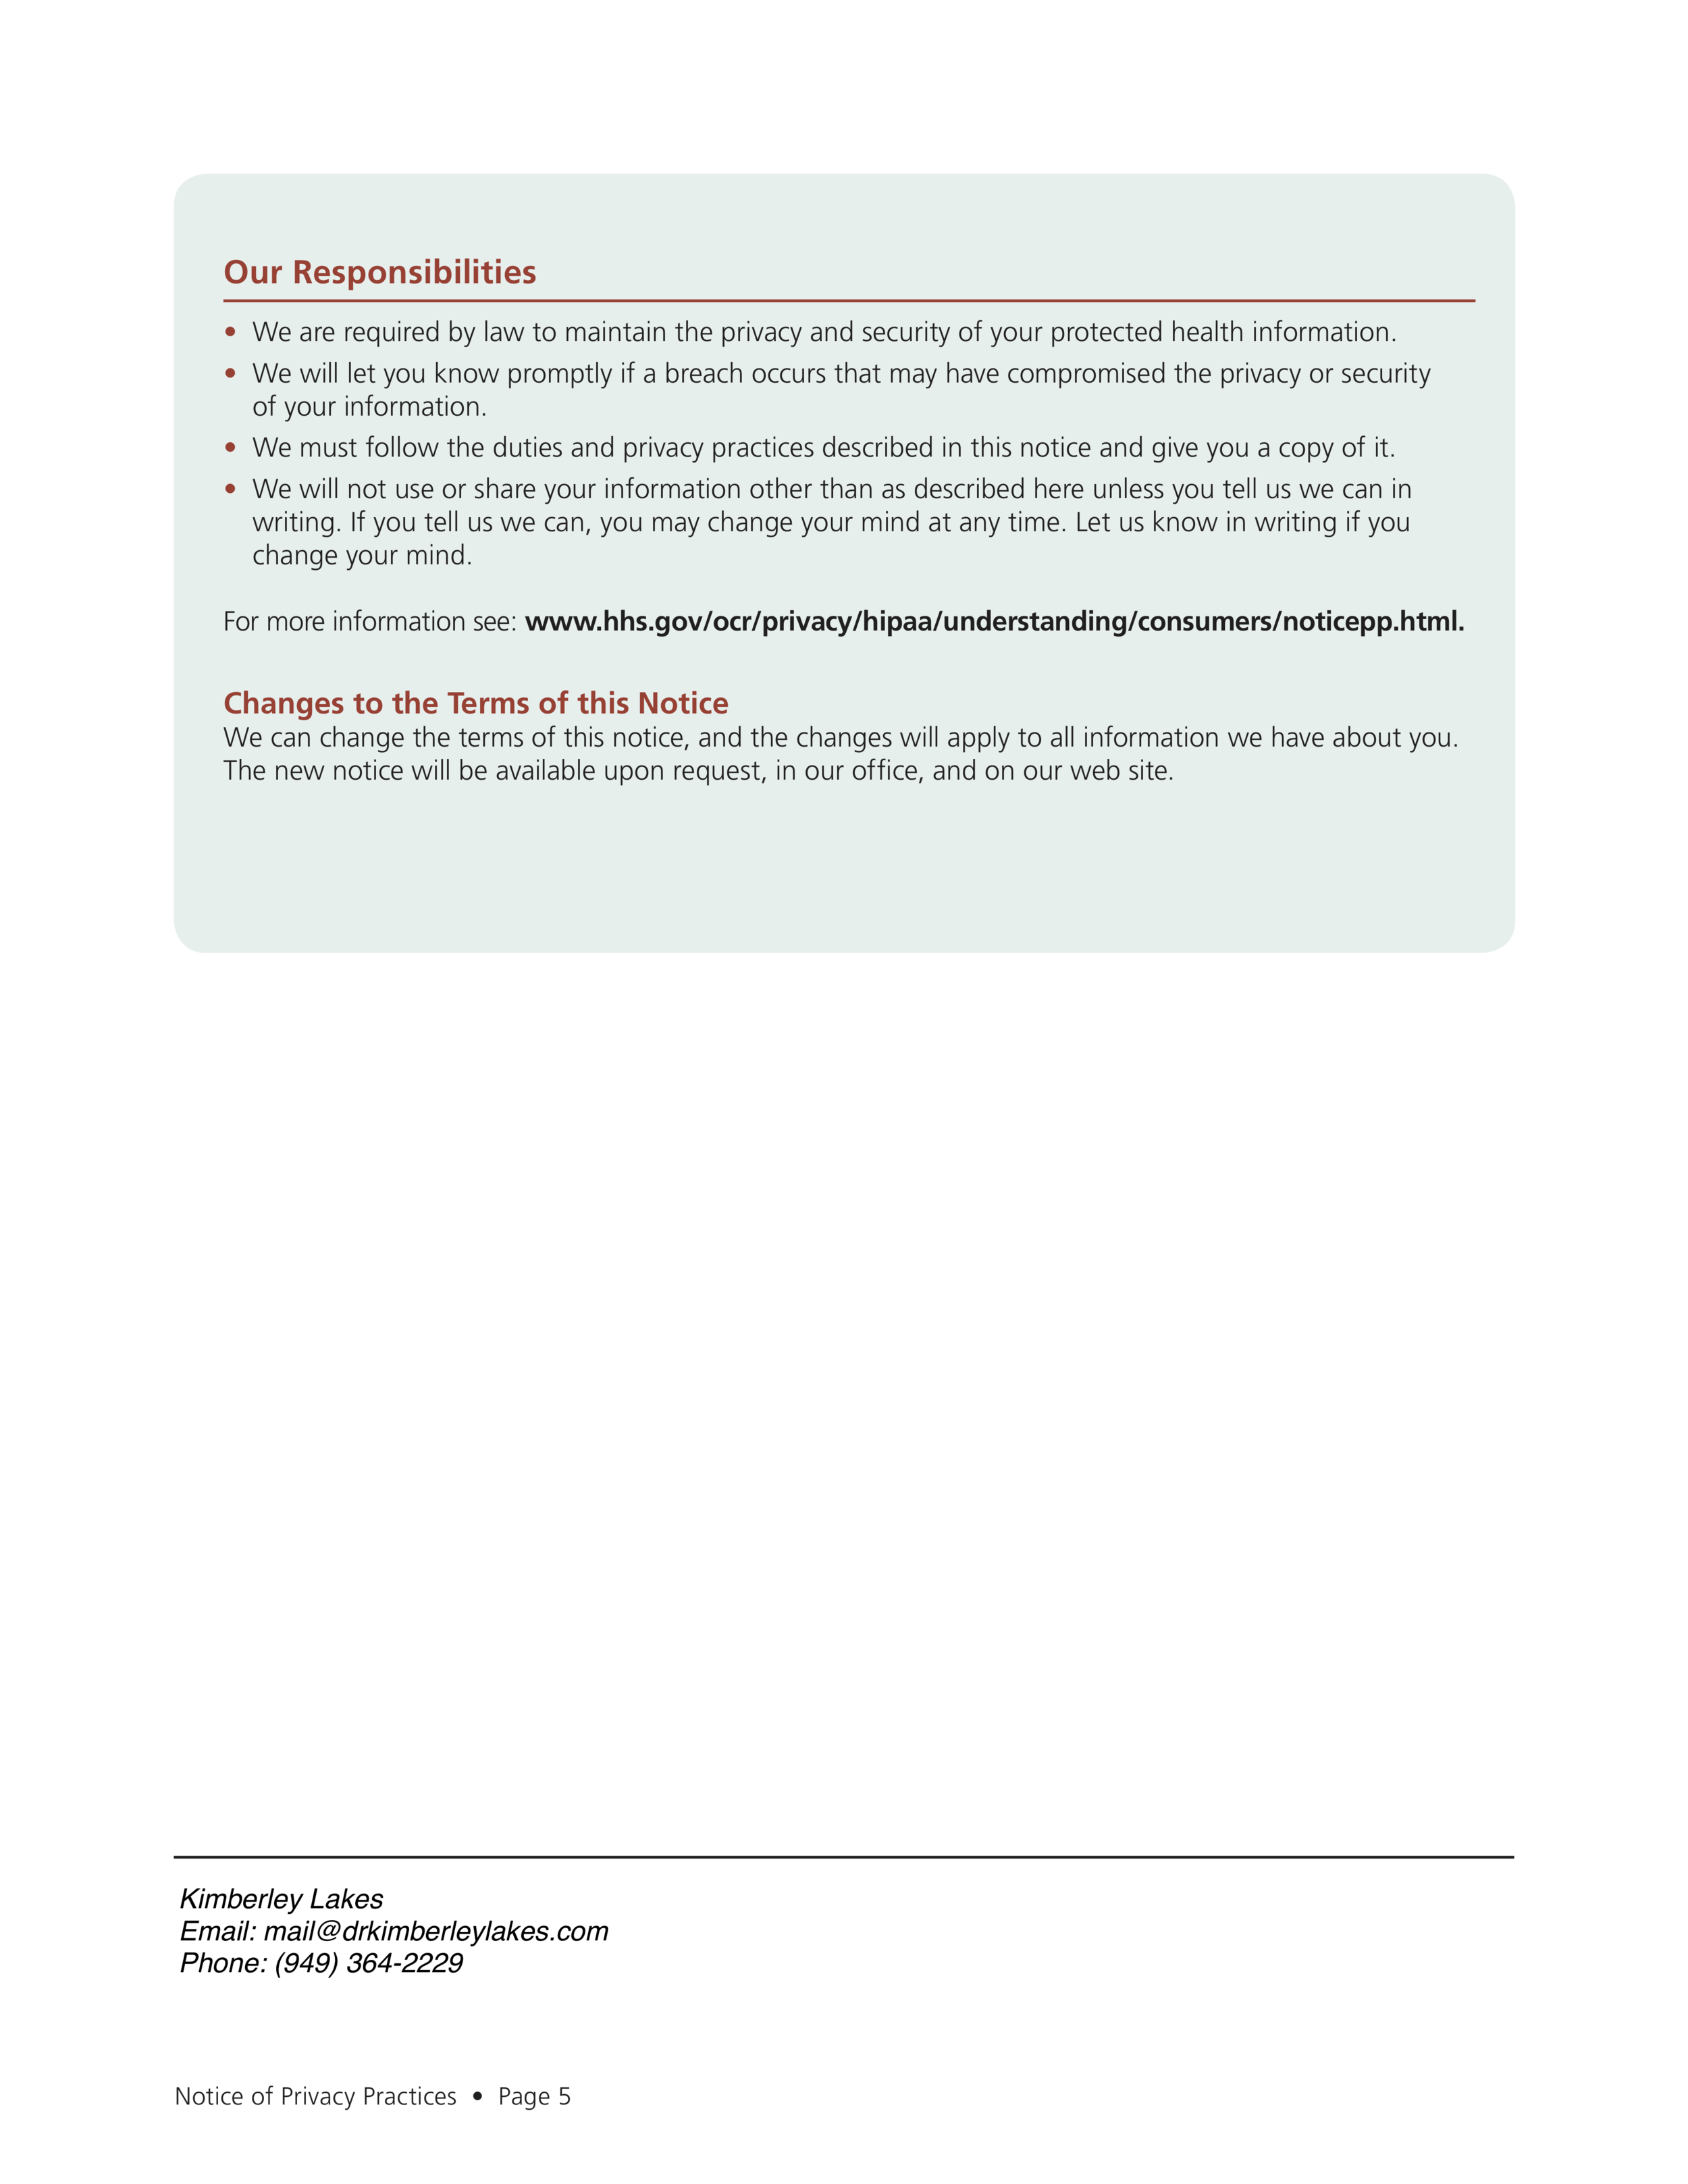 Notice of Privacy Practices 5.png